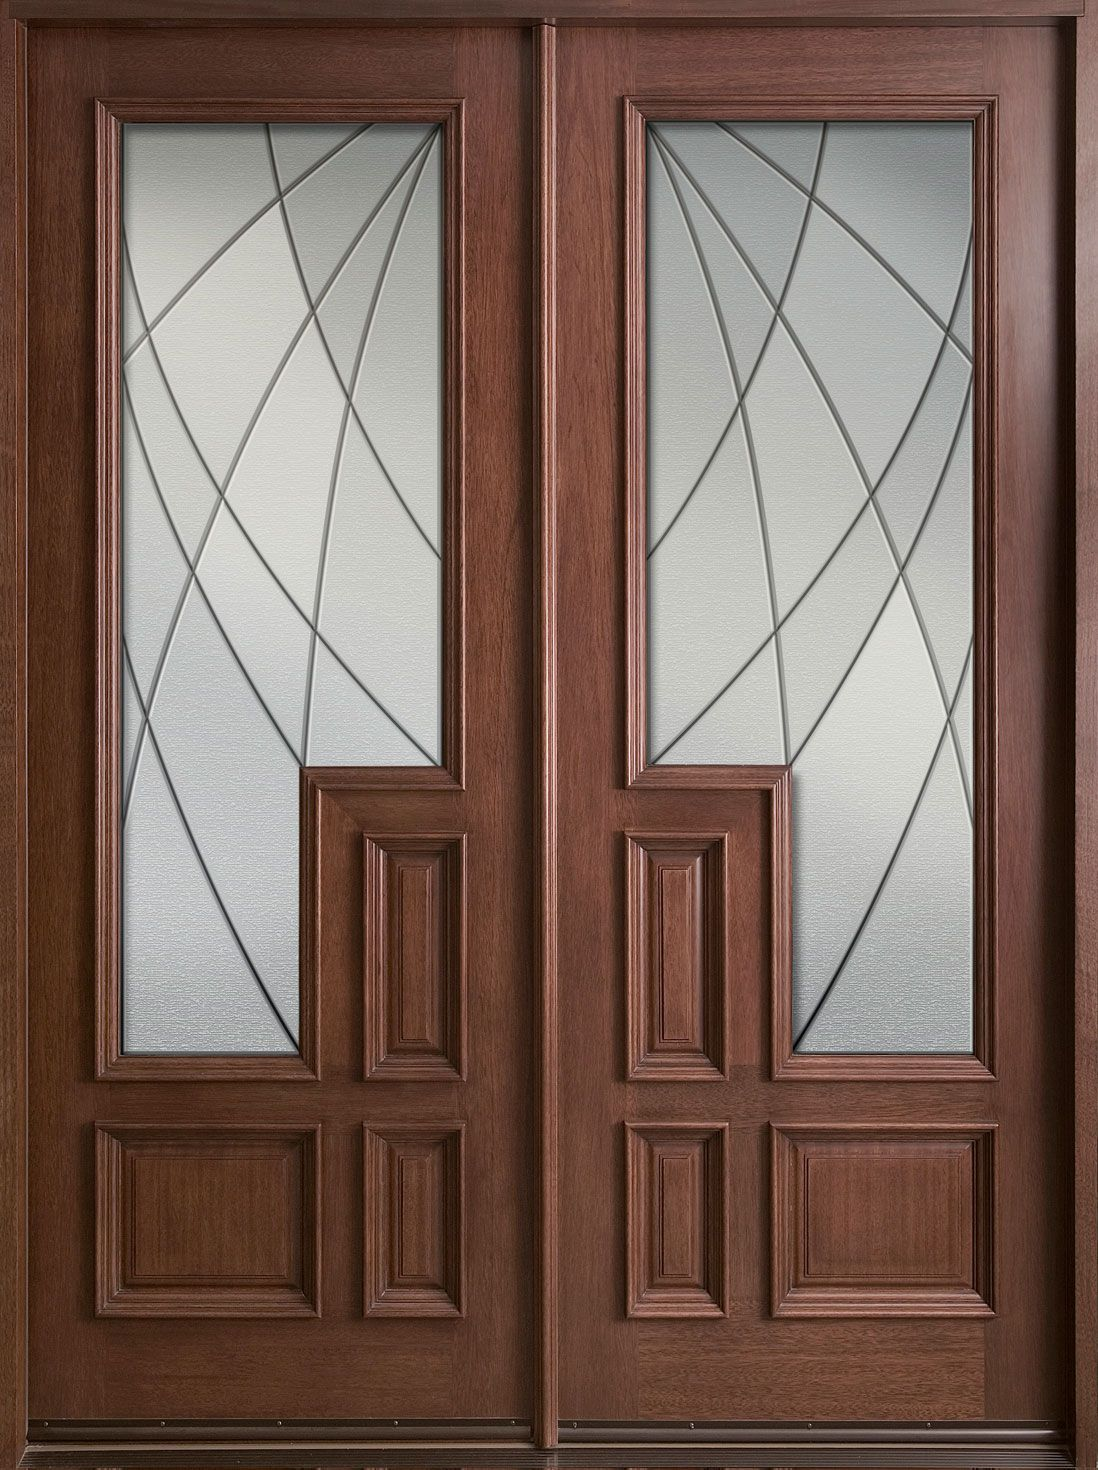 Inspiring double fiberglass entry door as furniture for for External doors